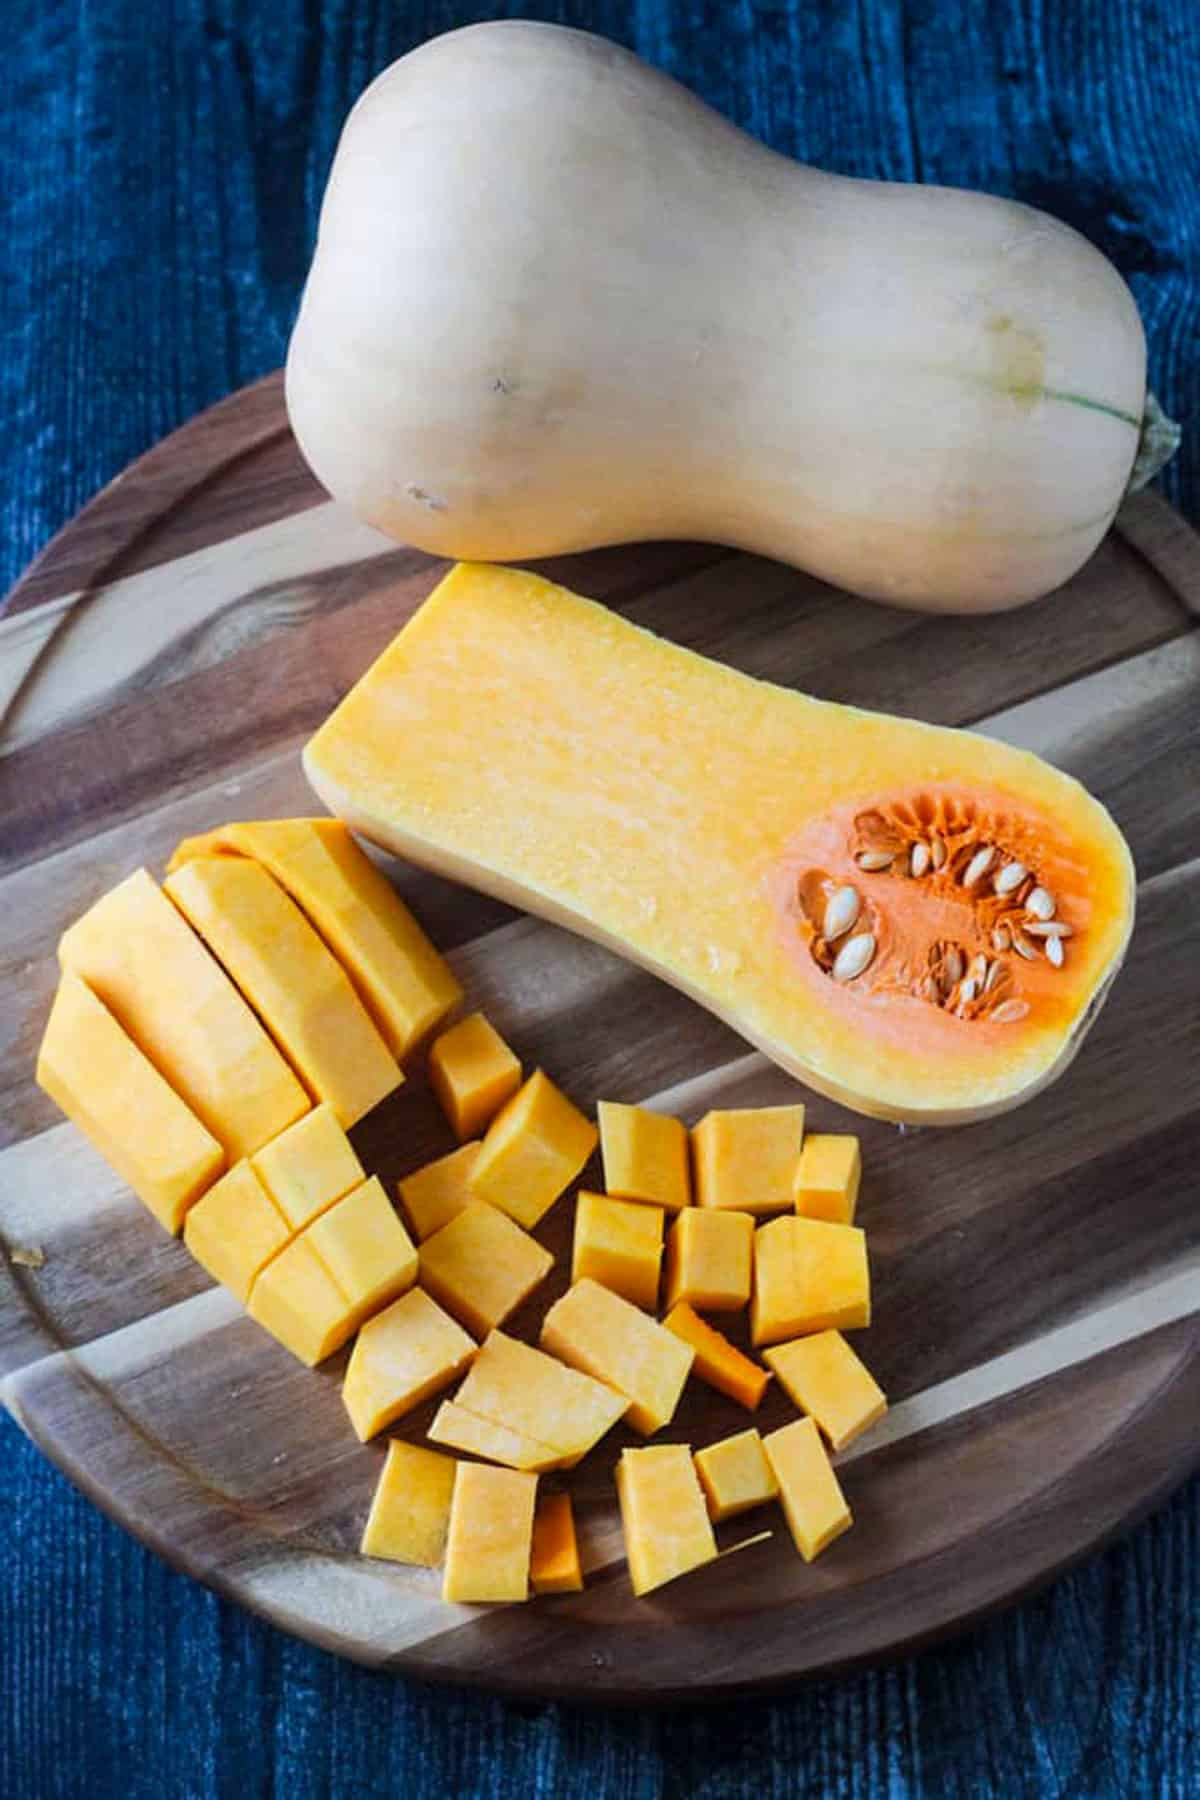 One whole butternut squash, one half butternut squash cut side up, and cubed pieces of butternut squash on a round wooden cutting board.